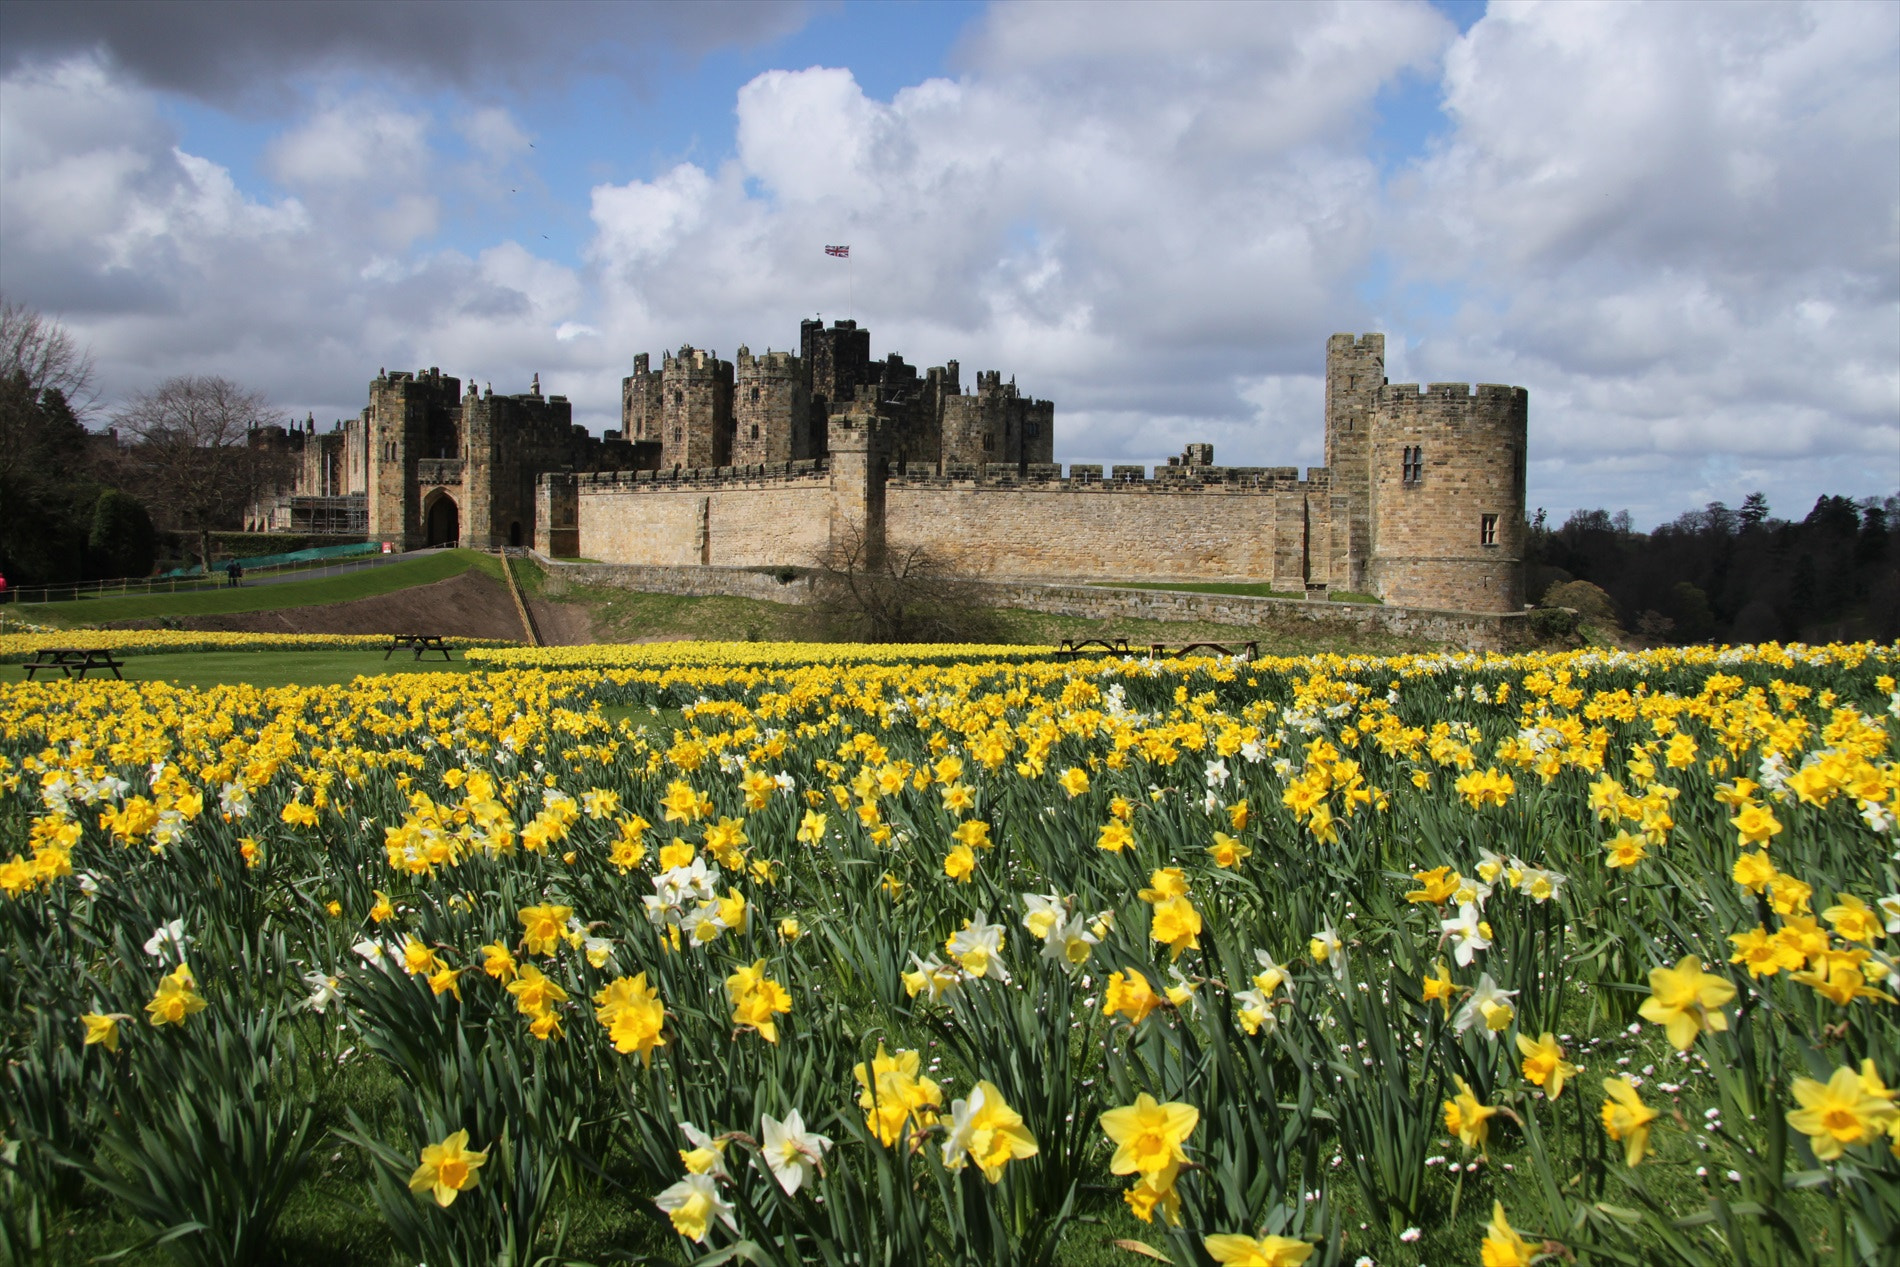 Photograph Alnwick Castle, Northumberland by Ann Chapman on 500px